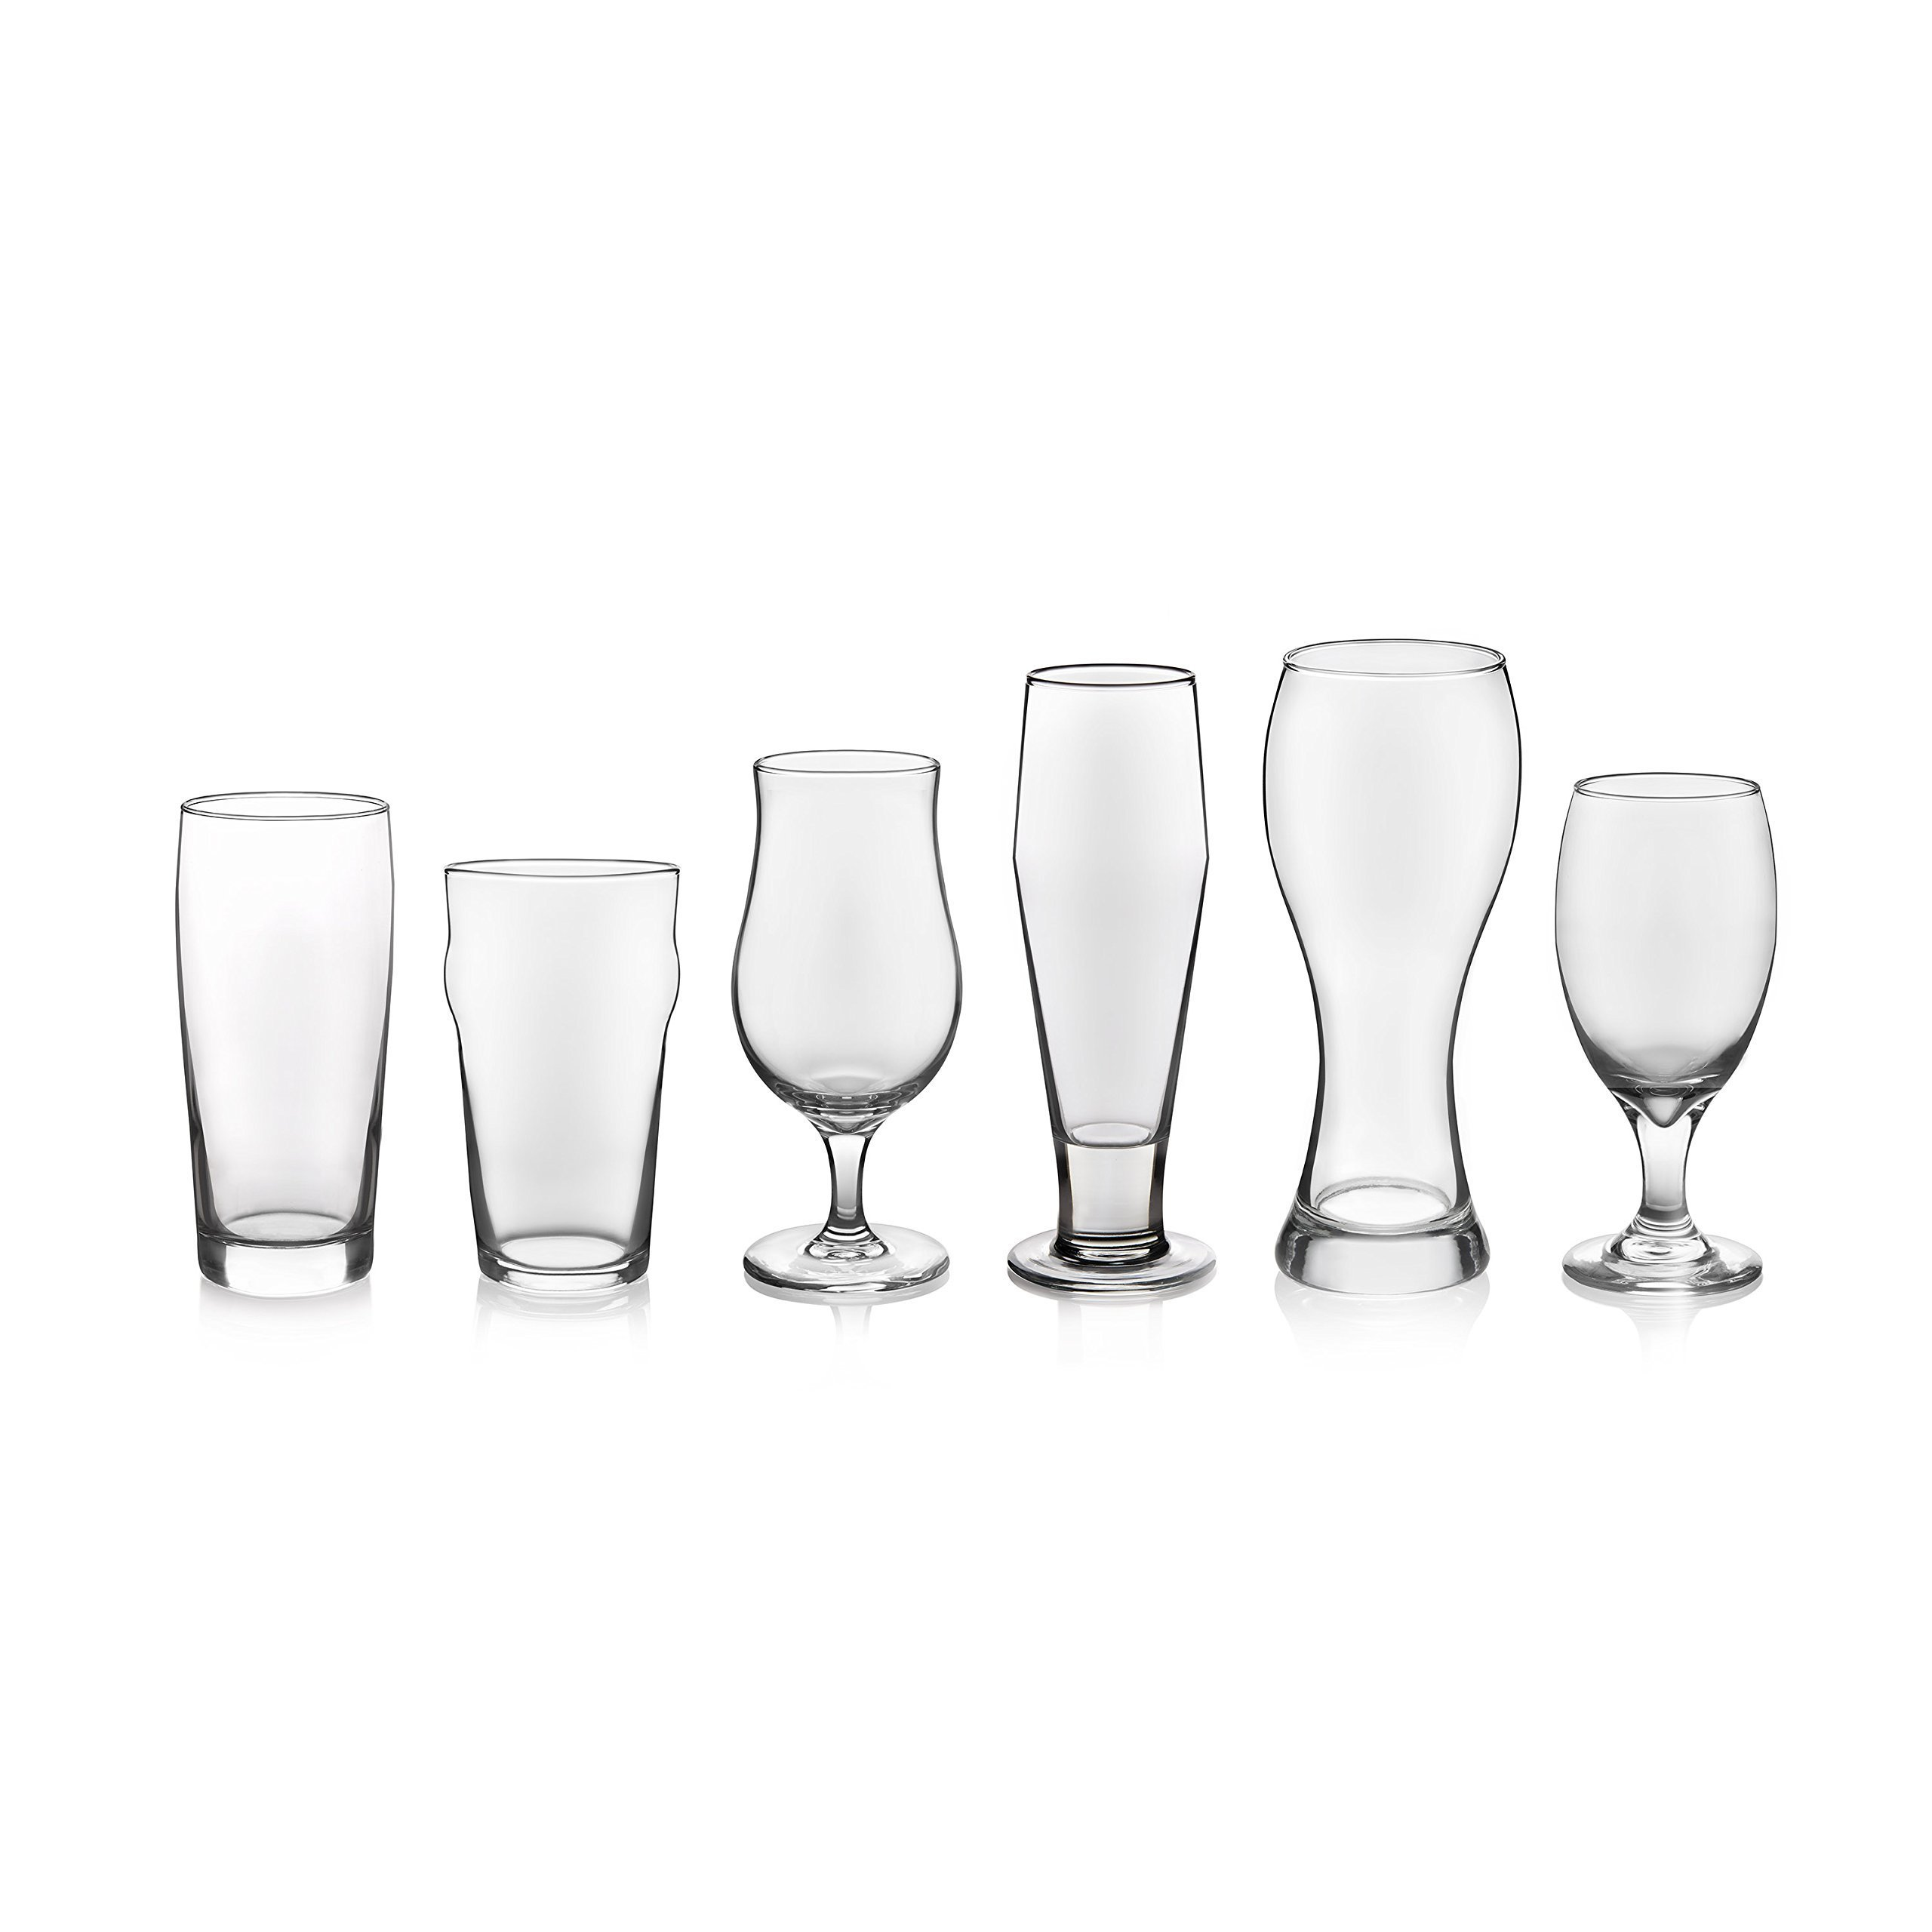 Libbey Craft Brews 6-piece Assorted Beer Drinkware Glass Set by Libbey (Image #2)